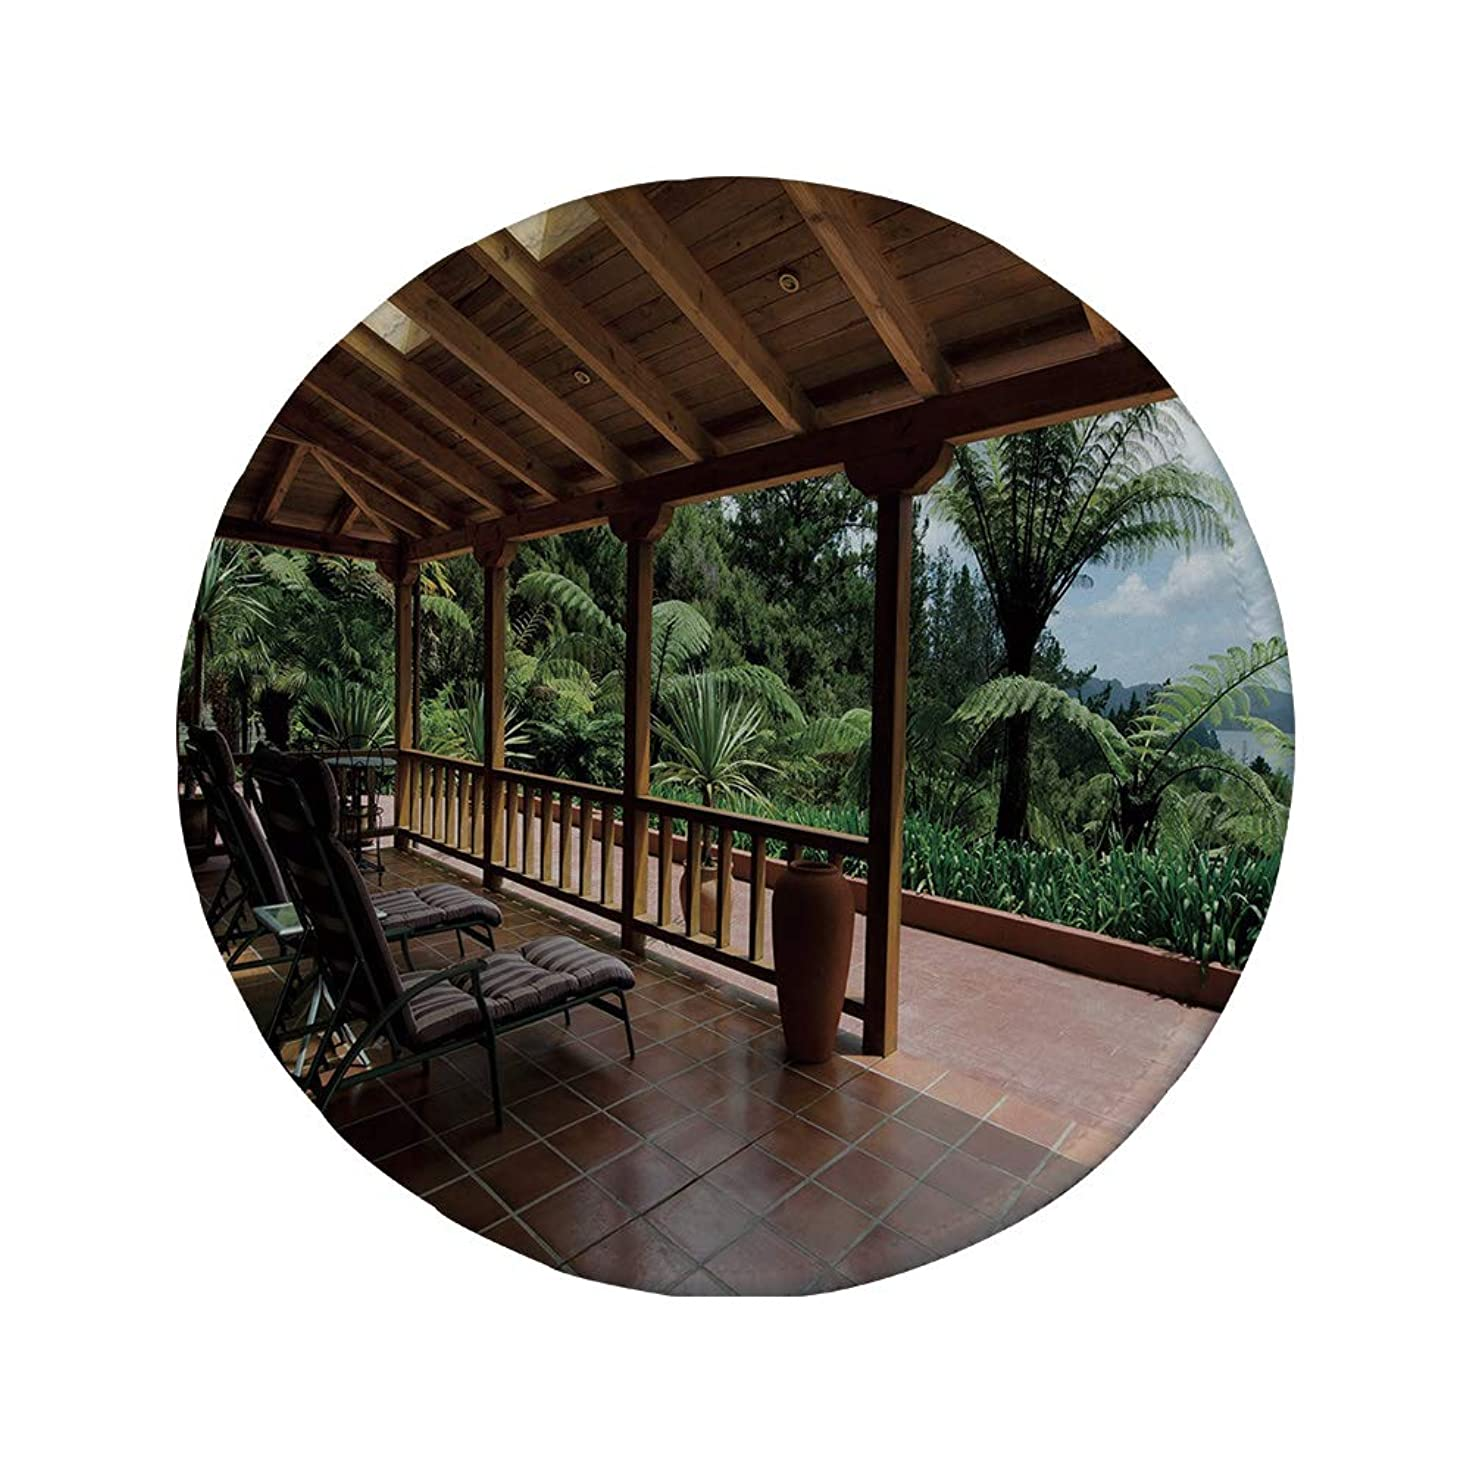 Non-Slip Rubber Round Mouse Pad,Patio Decor,Sub Tropical Wooden Terrace Near Bushes and Grass Villa Yard Lifestyle,Light Coffee Green,11.8